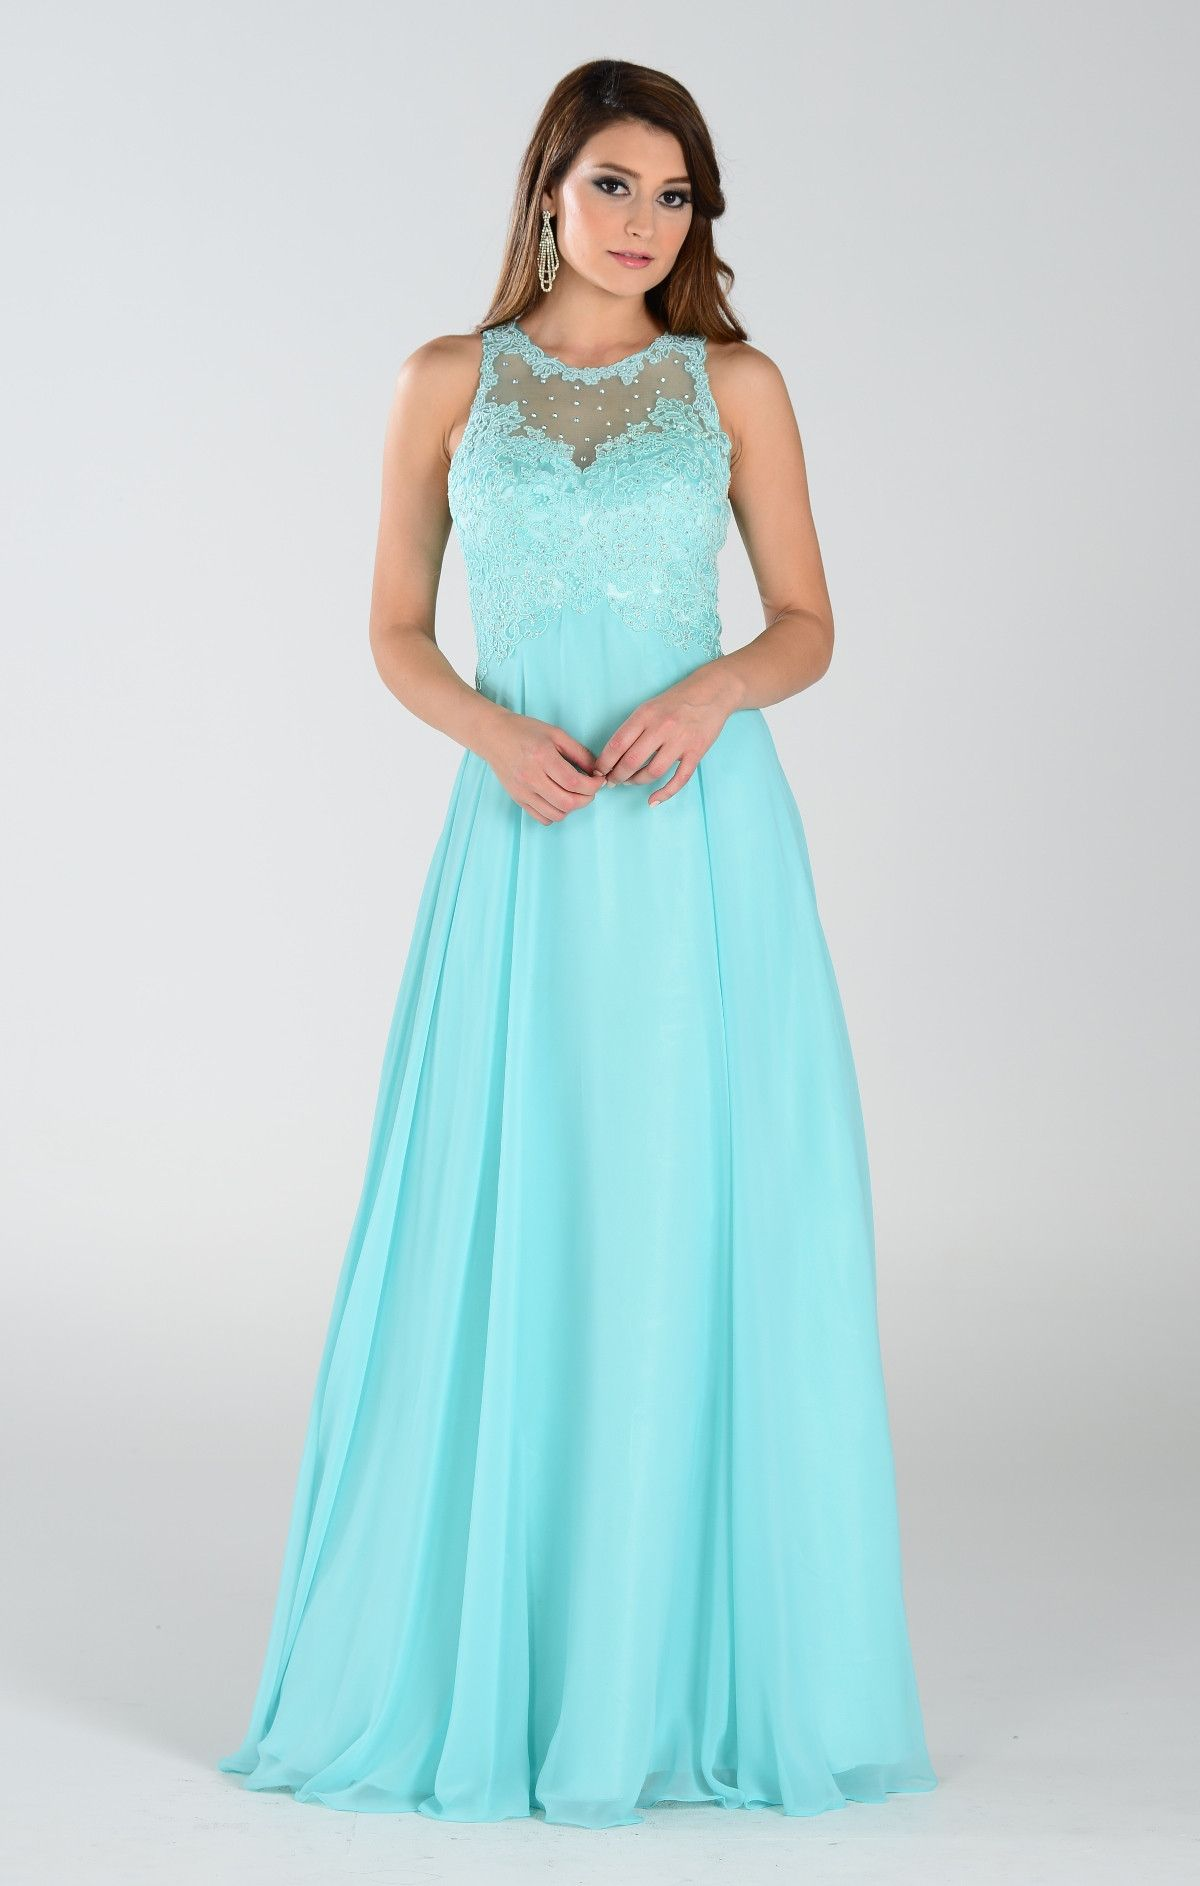 8e046de2eb6 Lace Bodice · Chiffon Gown · Illusion · Floor length dress  rq7310  https   www.simplyfabdress.com products